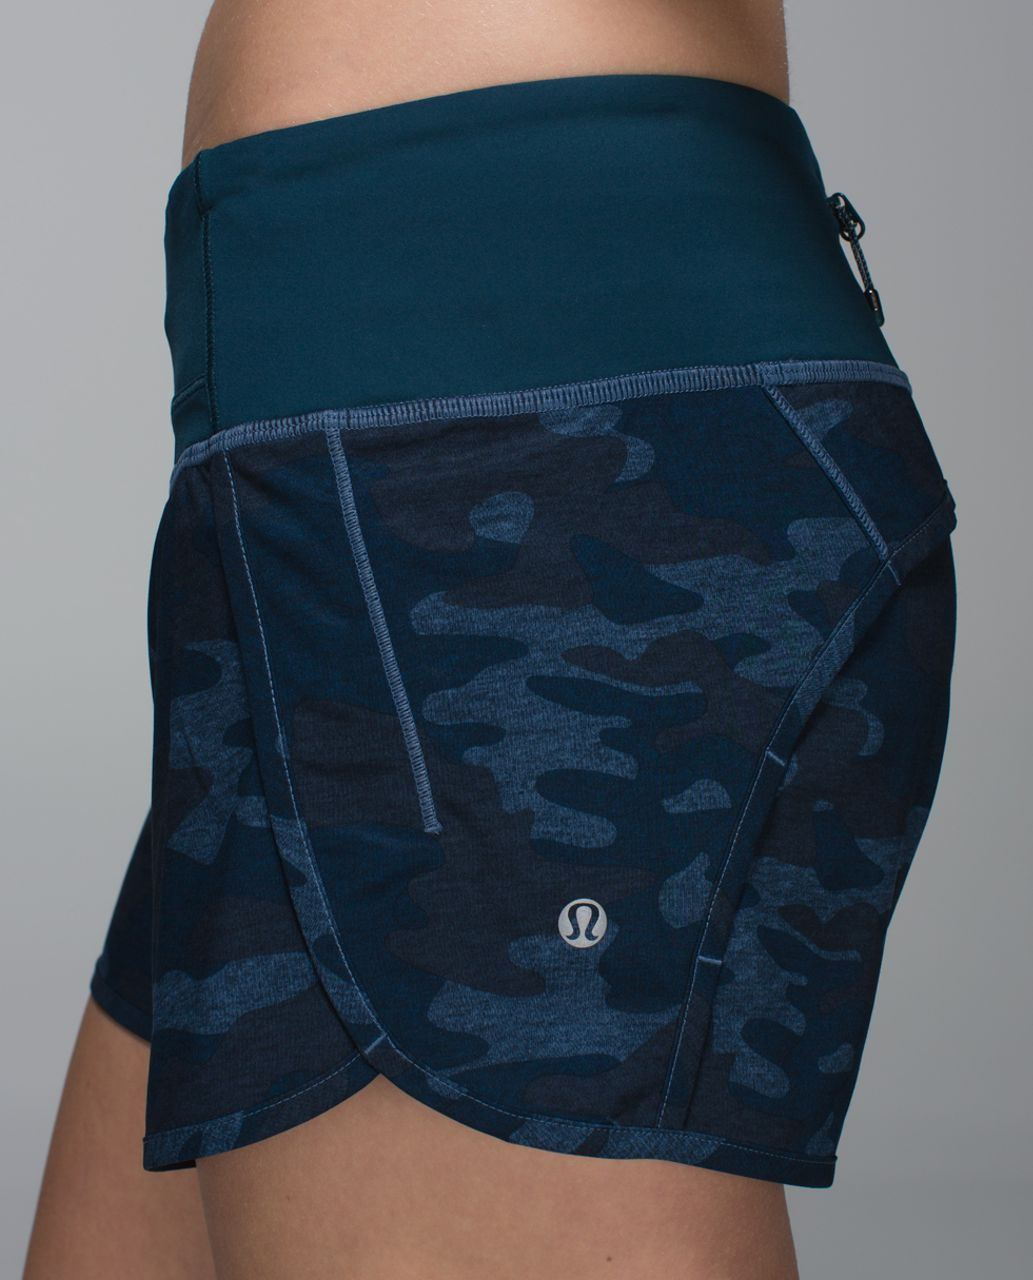 Lululemon Run Times Short *4-way Stretch - Heathered Texture Lotus Camo Oil Slick Blue / Alberta Lake